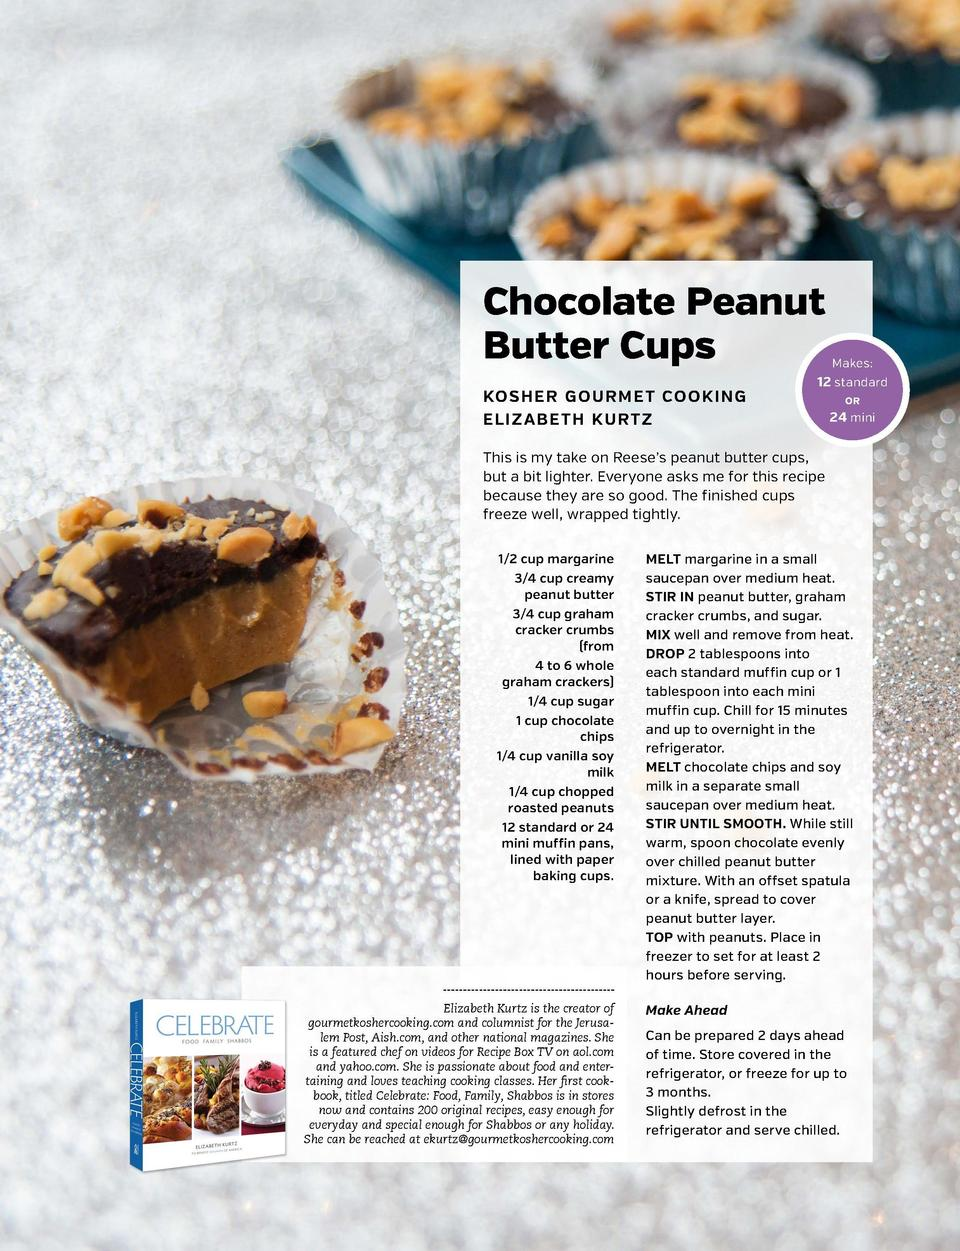 Chocolate Peanut Butter Cups KOSHER GOURMET COOKING ELIZABETH KURTZ  Makes   12 standard OR  24 mini  This is my take on R...